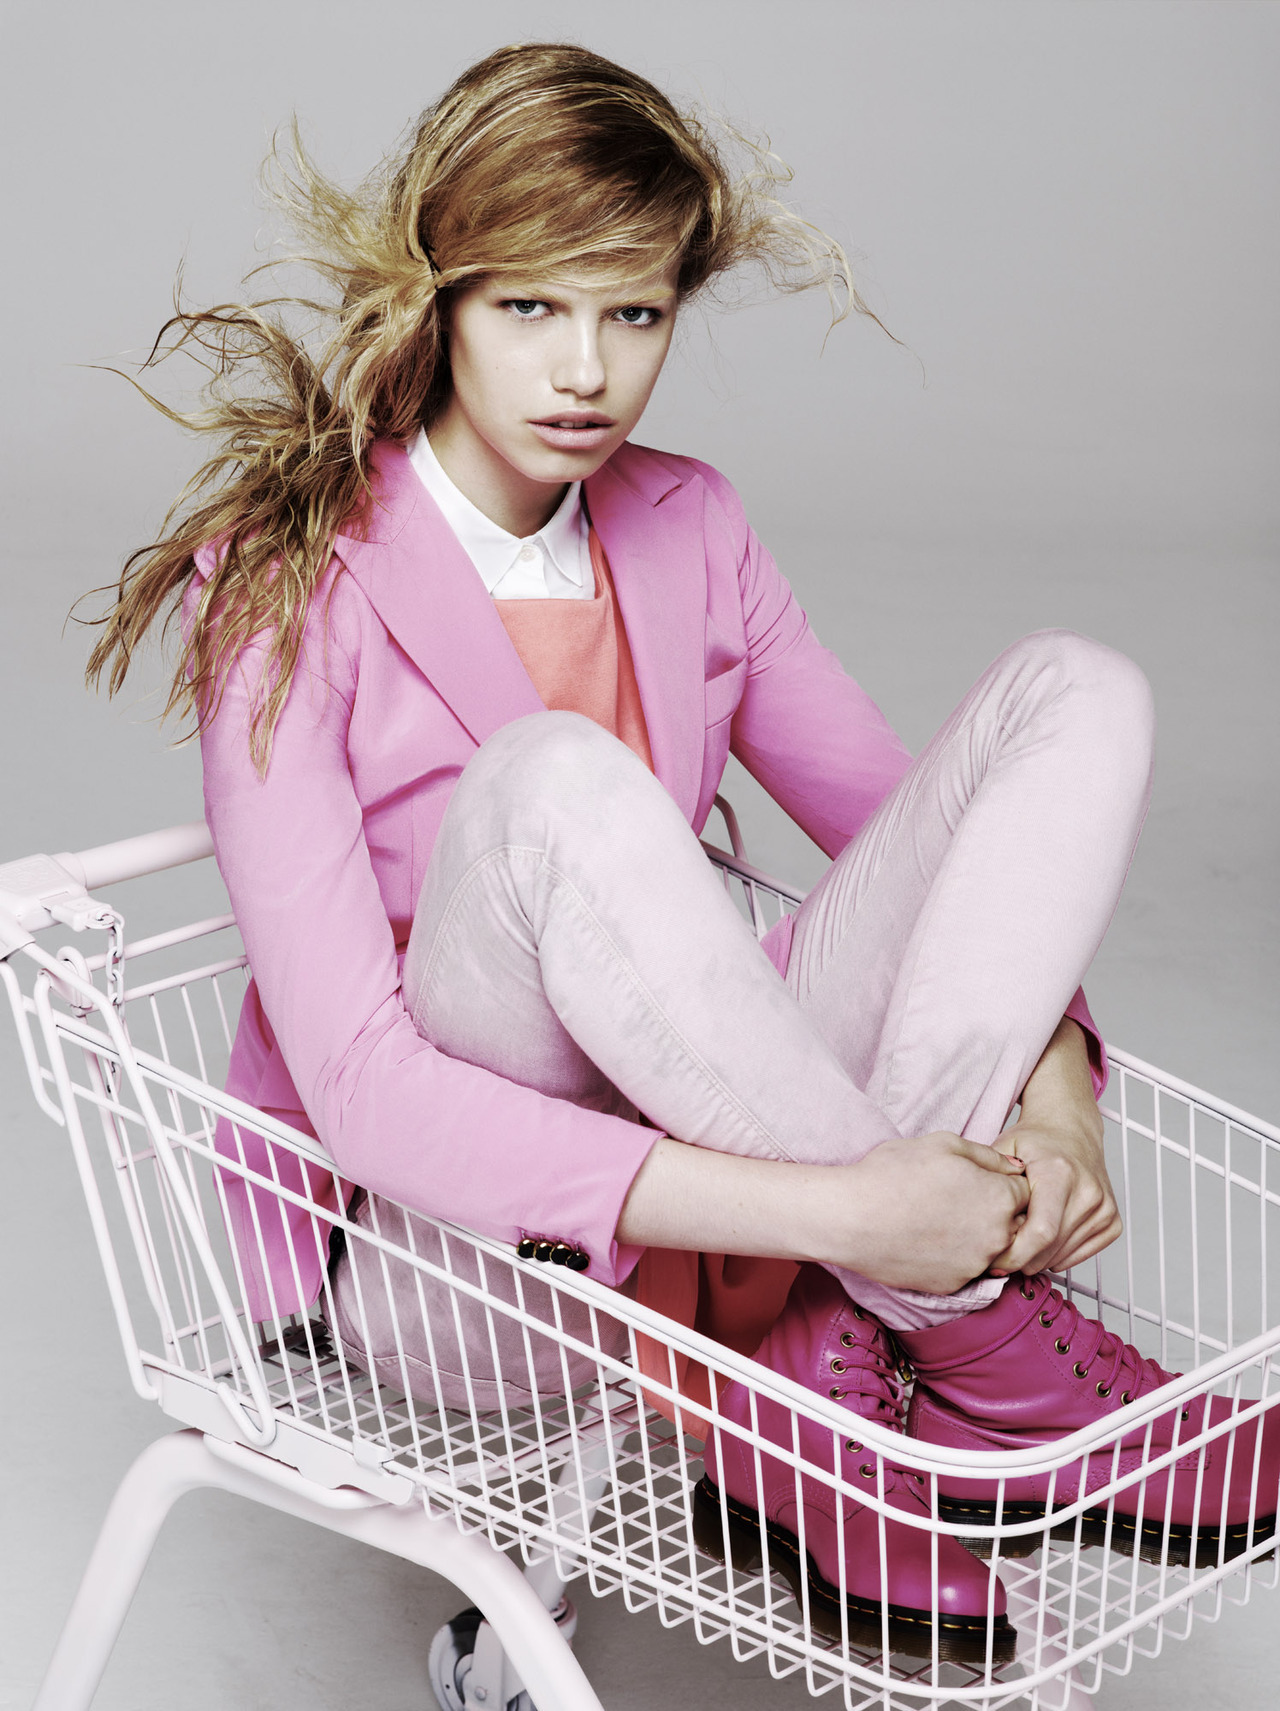 hailey clauson by aitken jolly for exit, s/s 2012